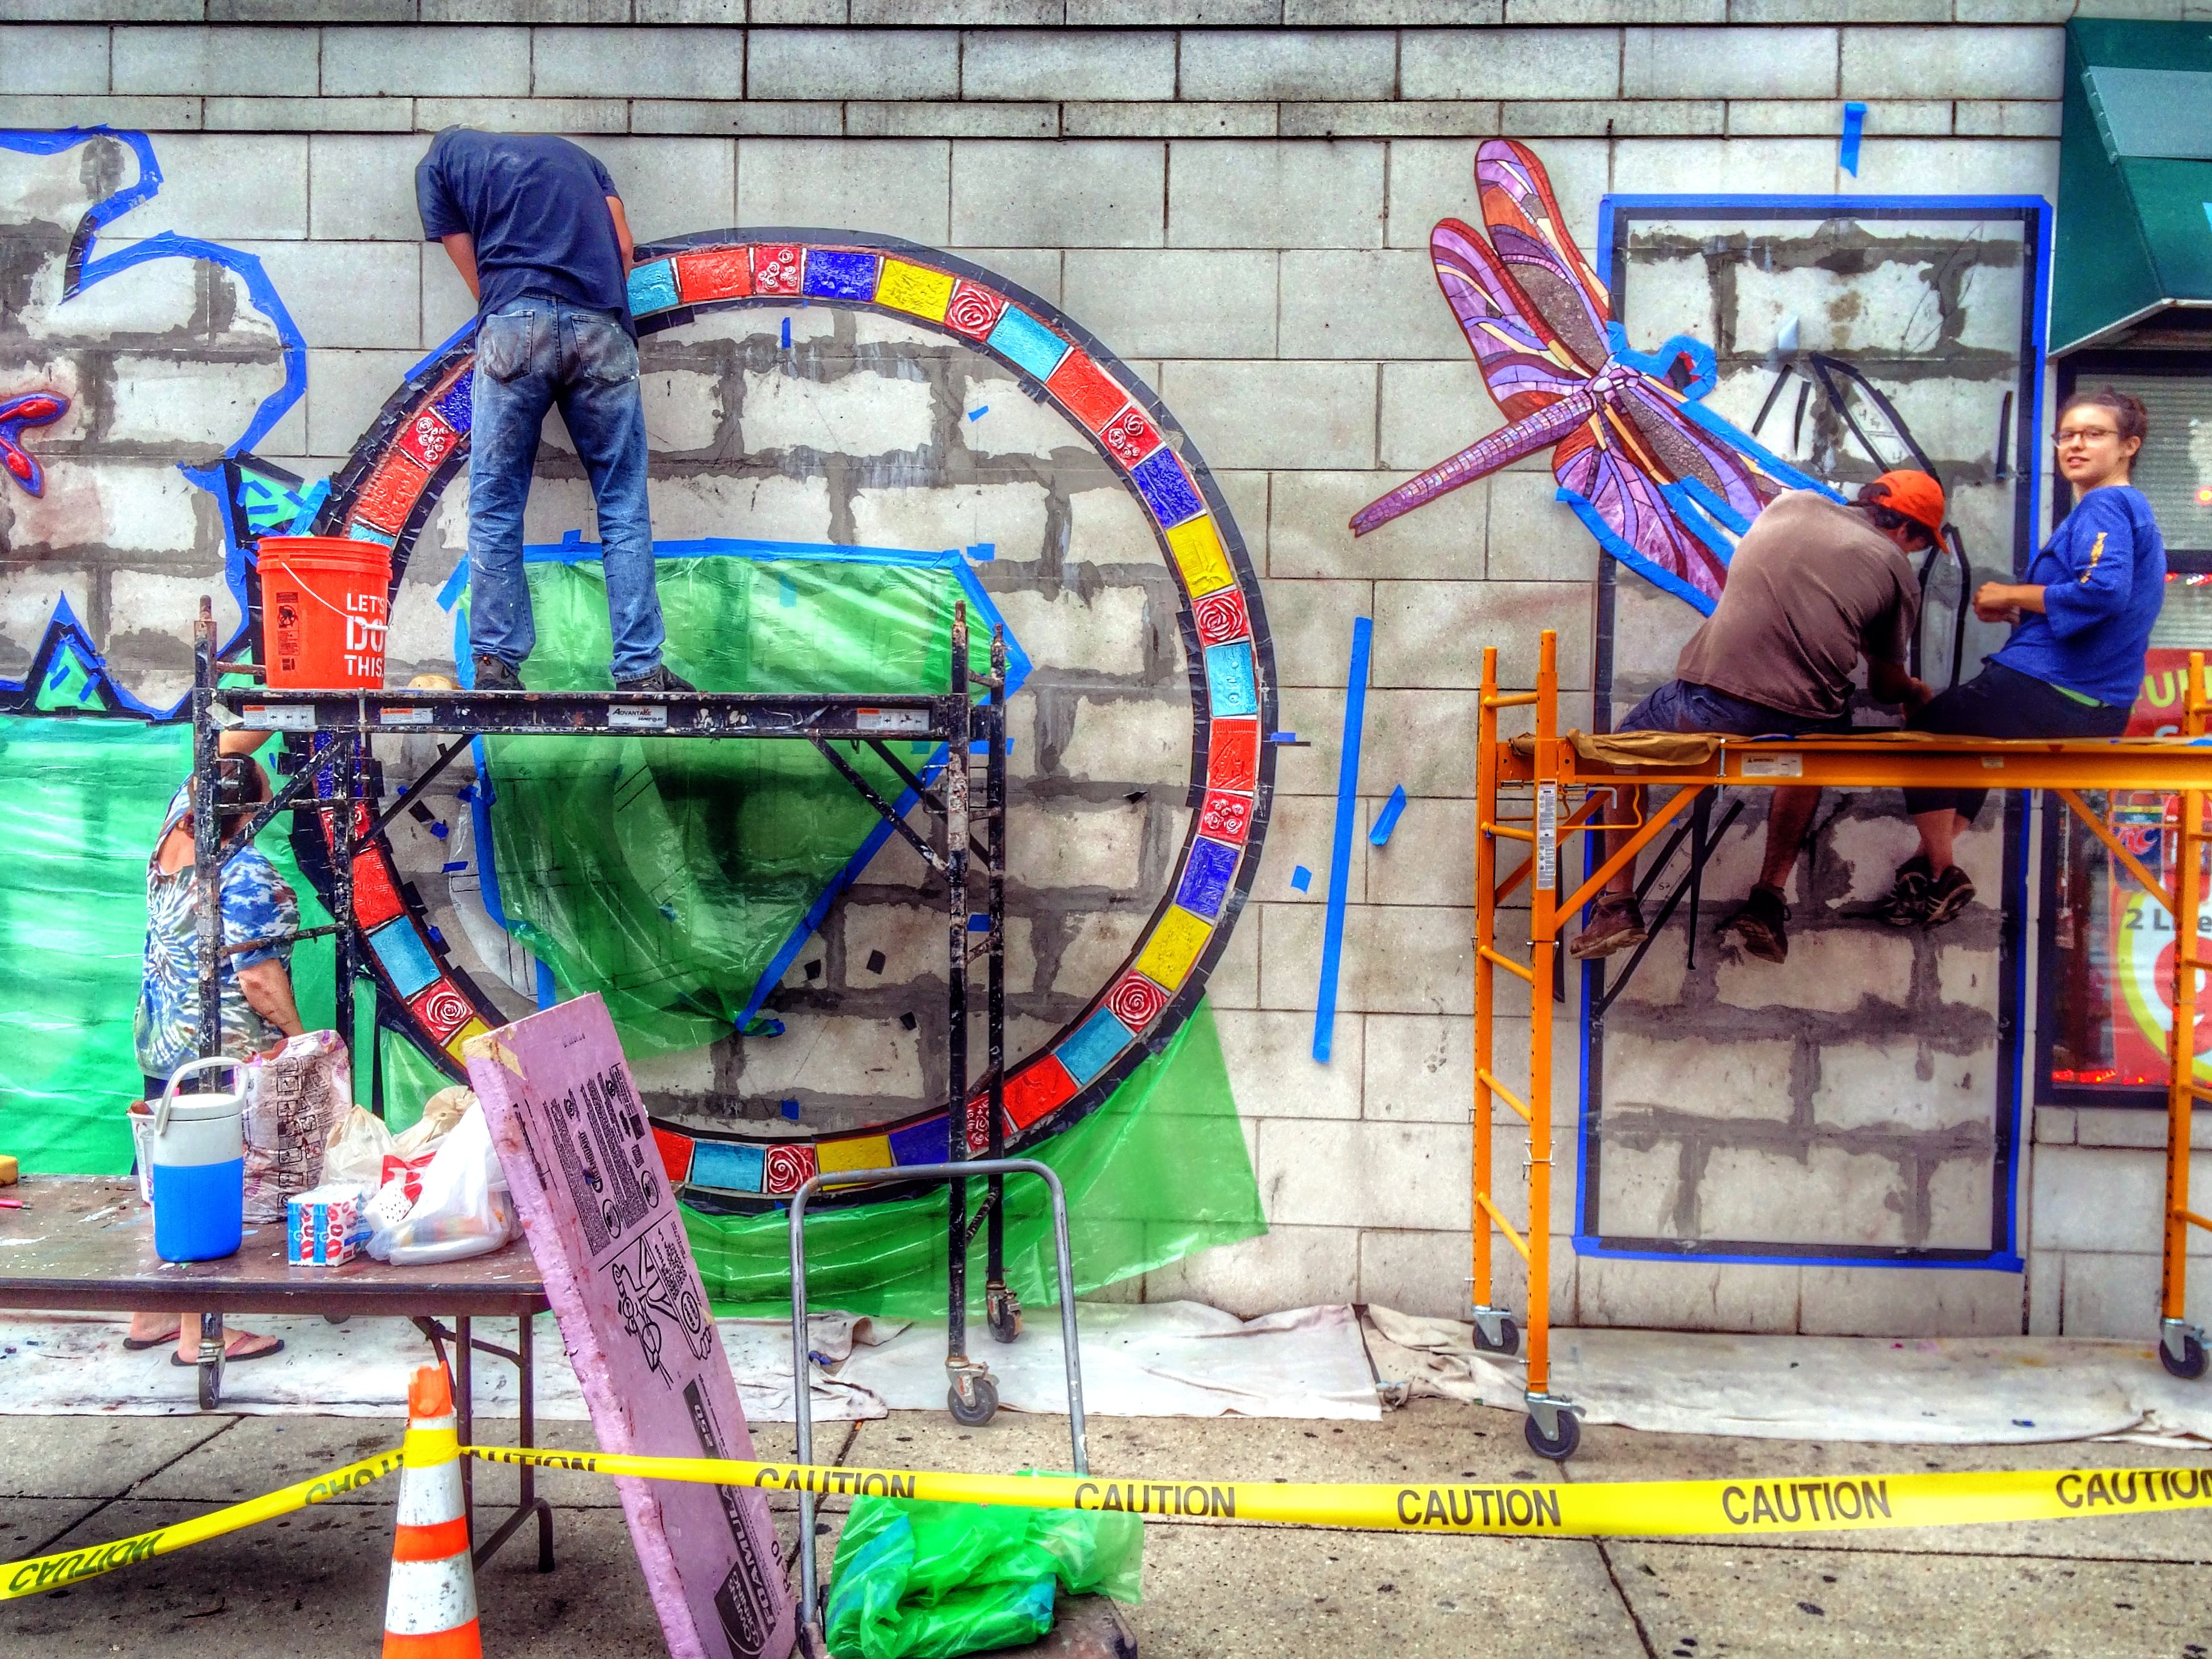 graffiti, art and craft, art, creativity, built structure, architecture, wall - building feature, building exterior, human representation, multi colored, street art, bicycle, street, wall, mural, blue, day, outdoors, sculpture